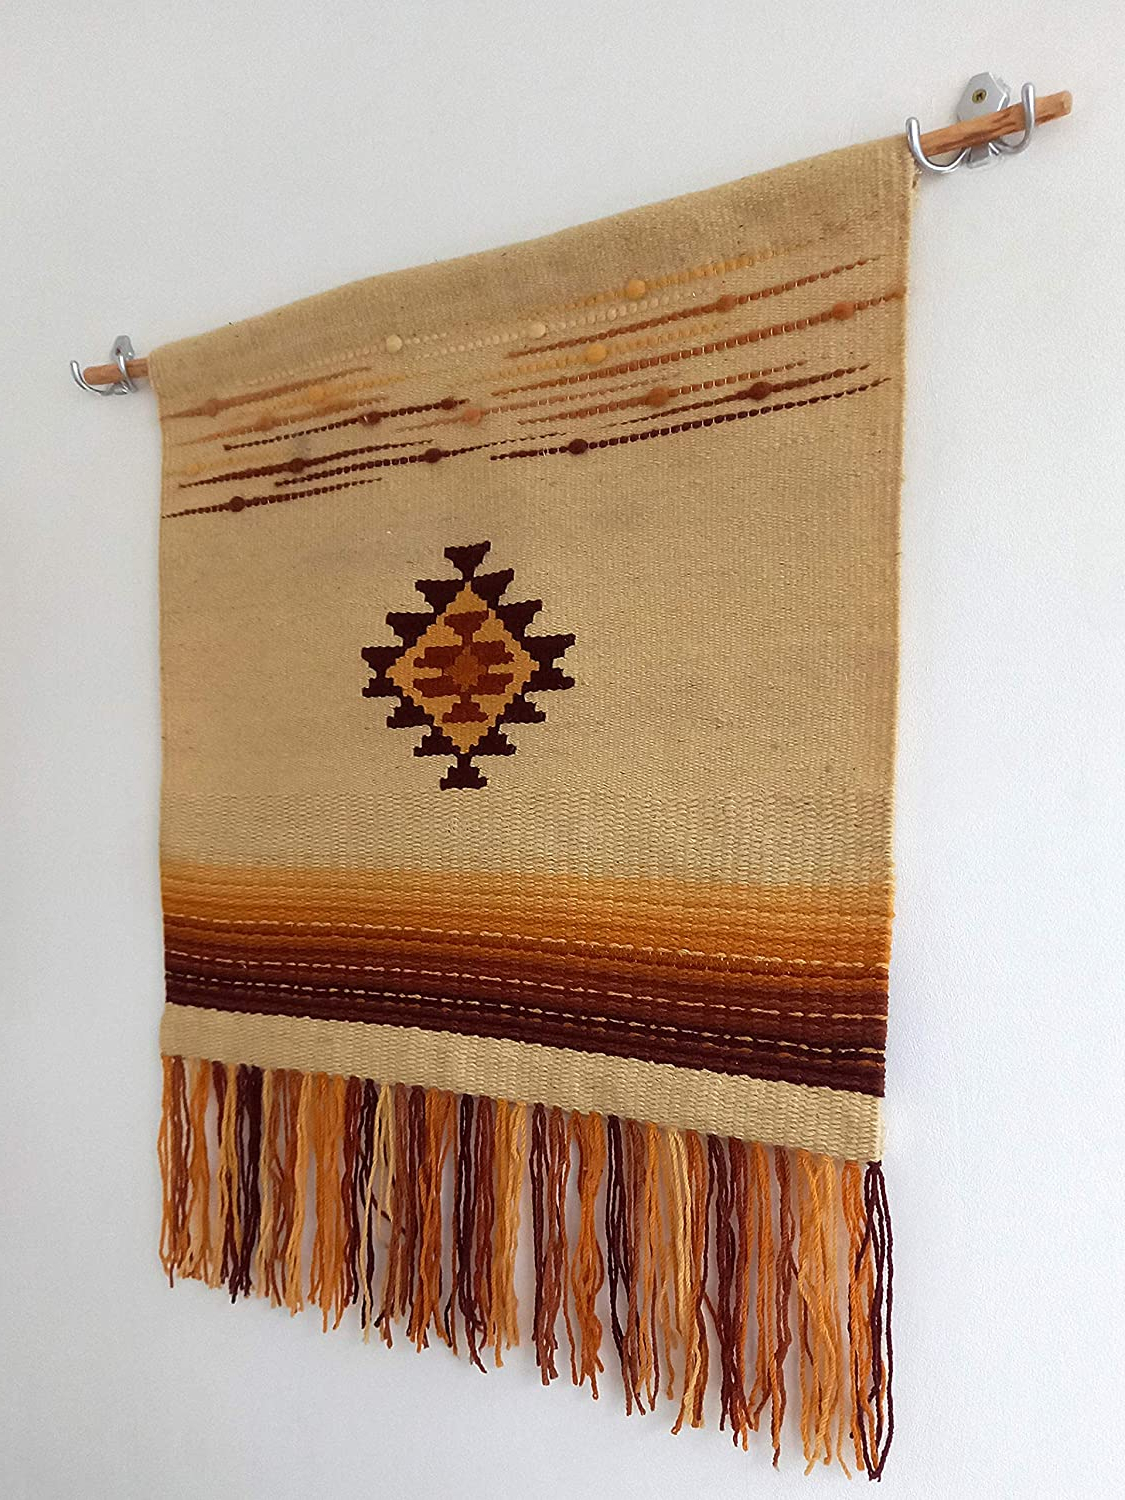 Amazon: Hand Woven Wall Hanging, Boho Handmade Wall Intended For Well Liked Hand Woven Wall Hangings (View 16 of 20)